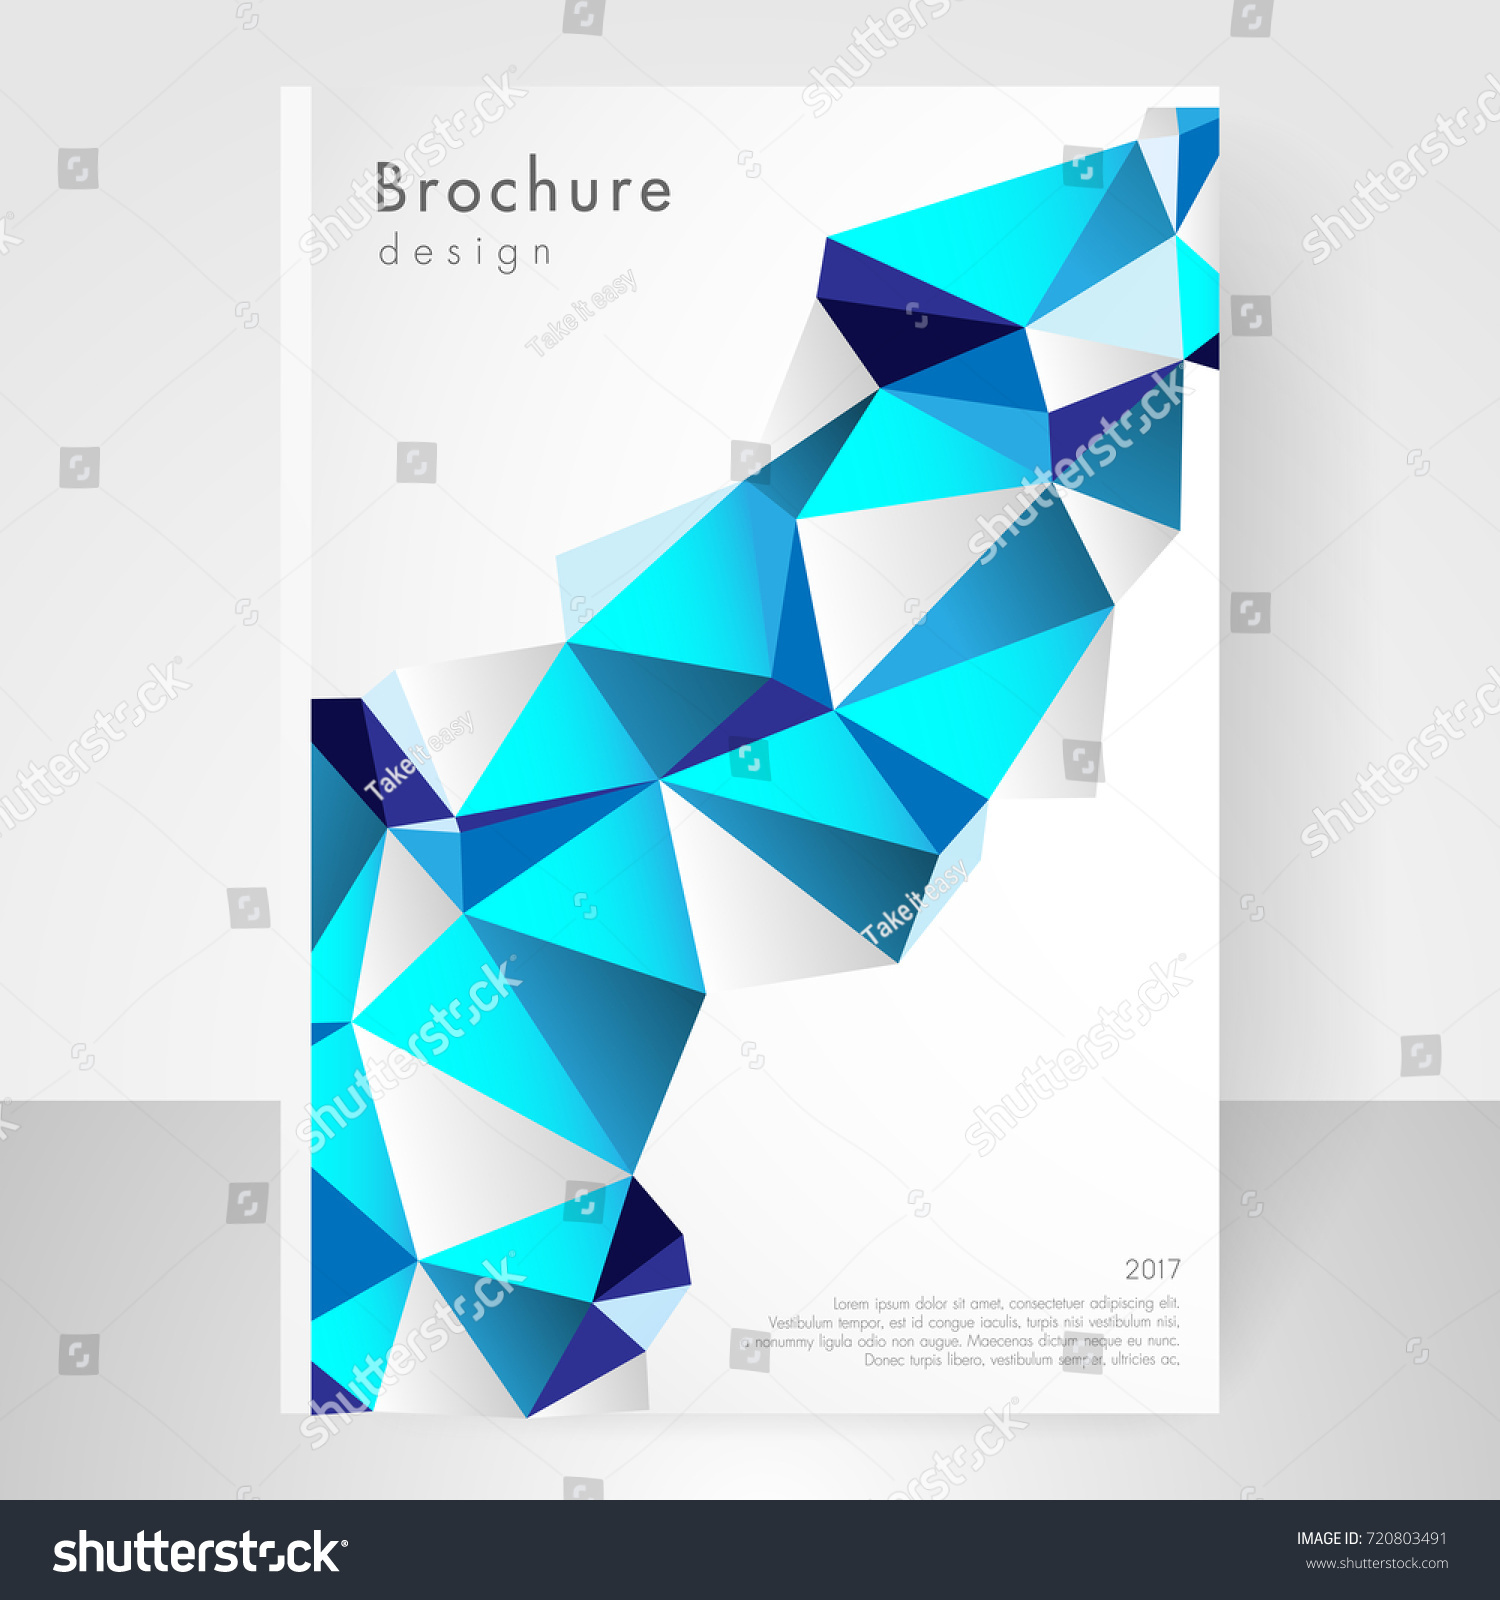 Business Brochure Cover Template Cover Design Stock Vector 720803491 ...